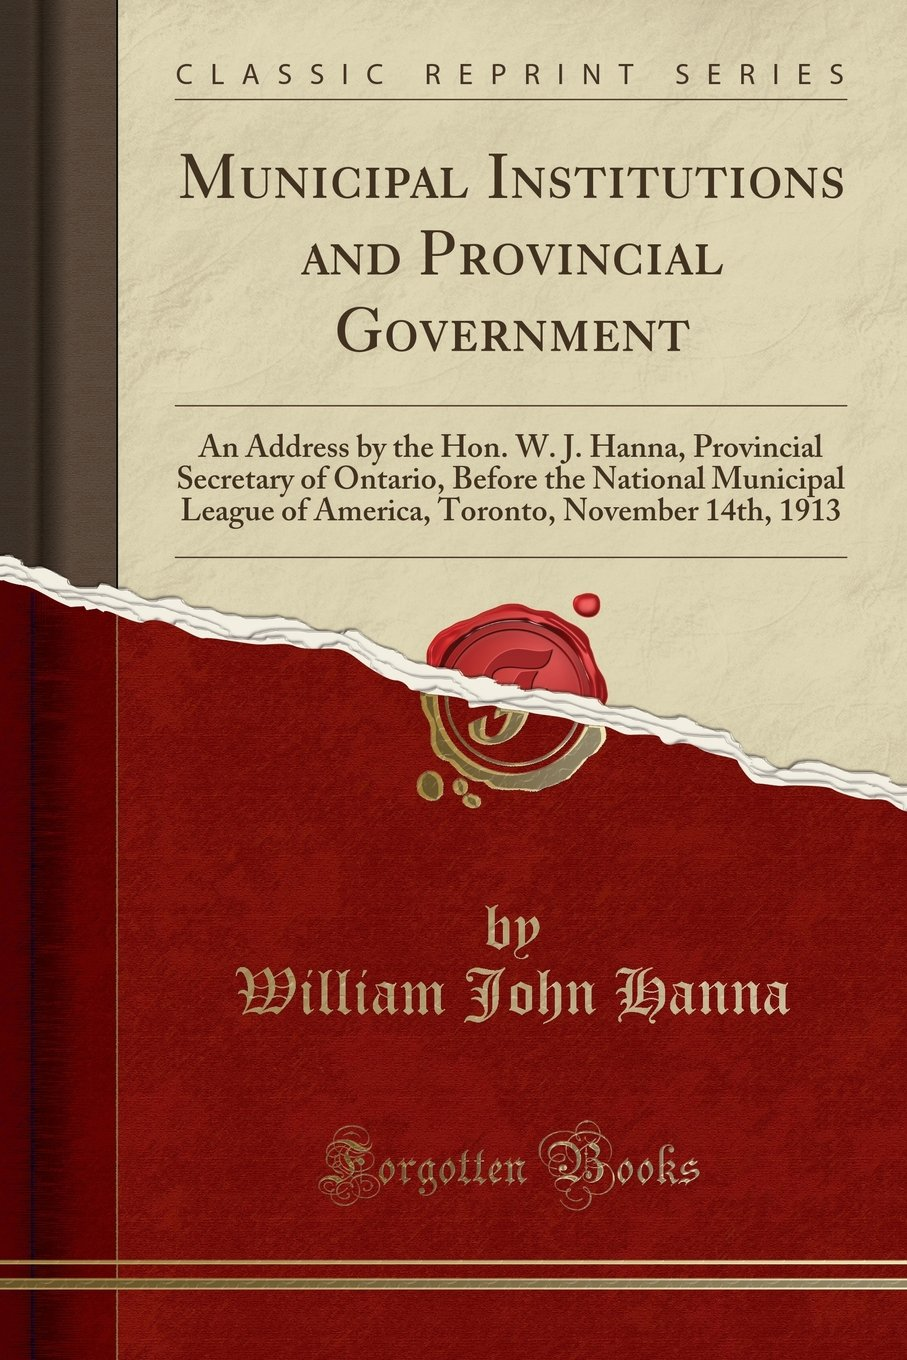 Municipal Institutions and Provincial Government: An Address by the Hon. W. J. Hanna, Provincial Secretary of Ontario, Before the National Municipal ... November 14th, 1913 (Classic Reprint) ebook